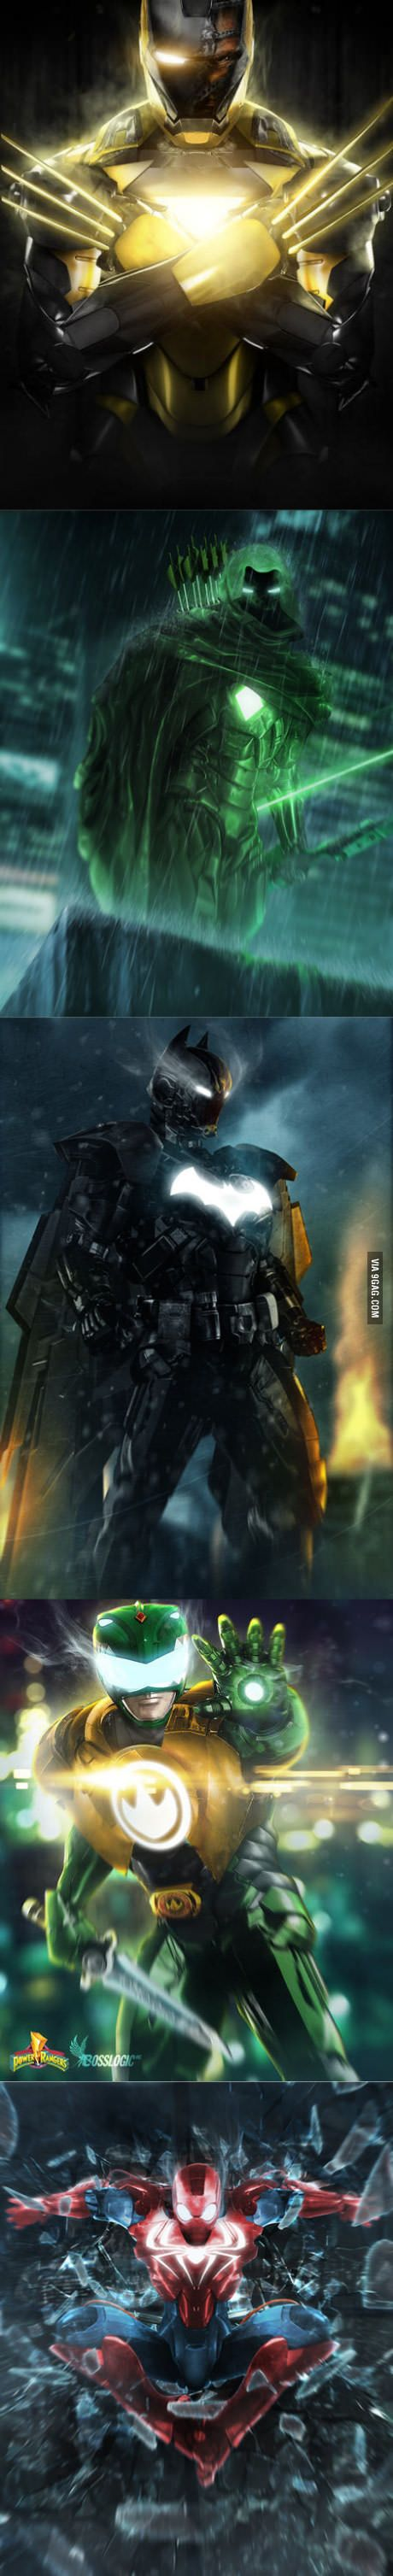 Superheroes Iron Suits